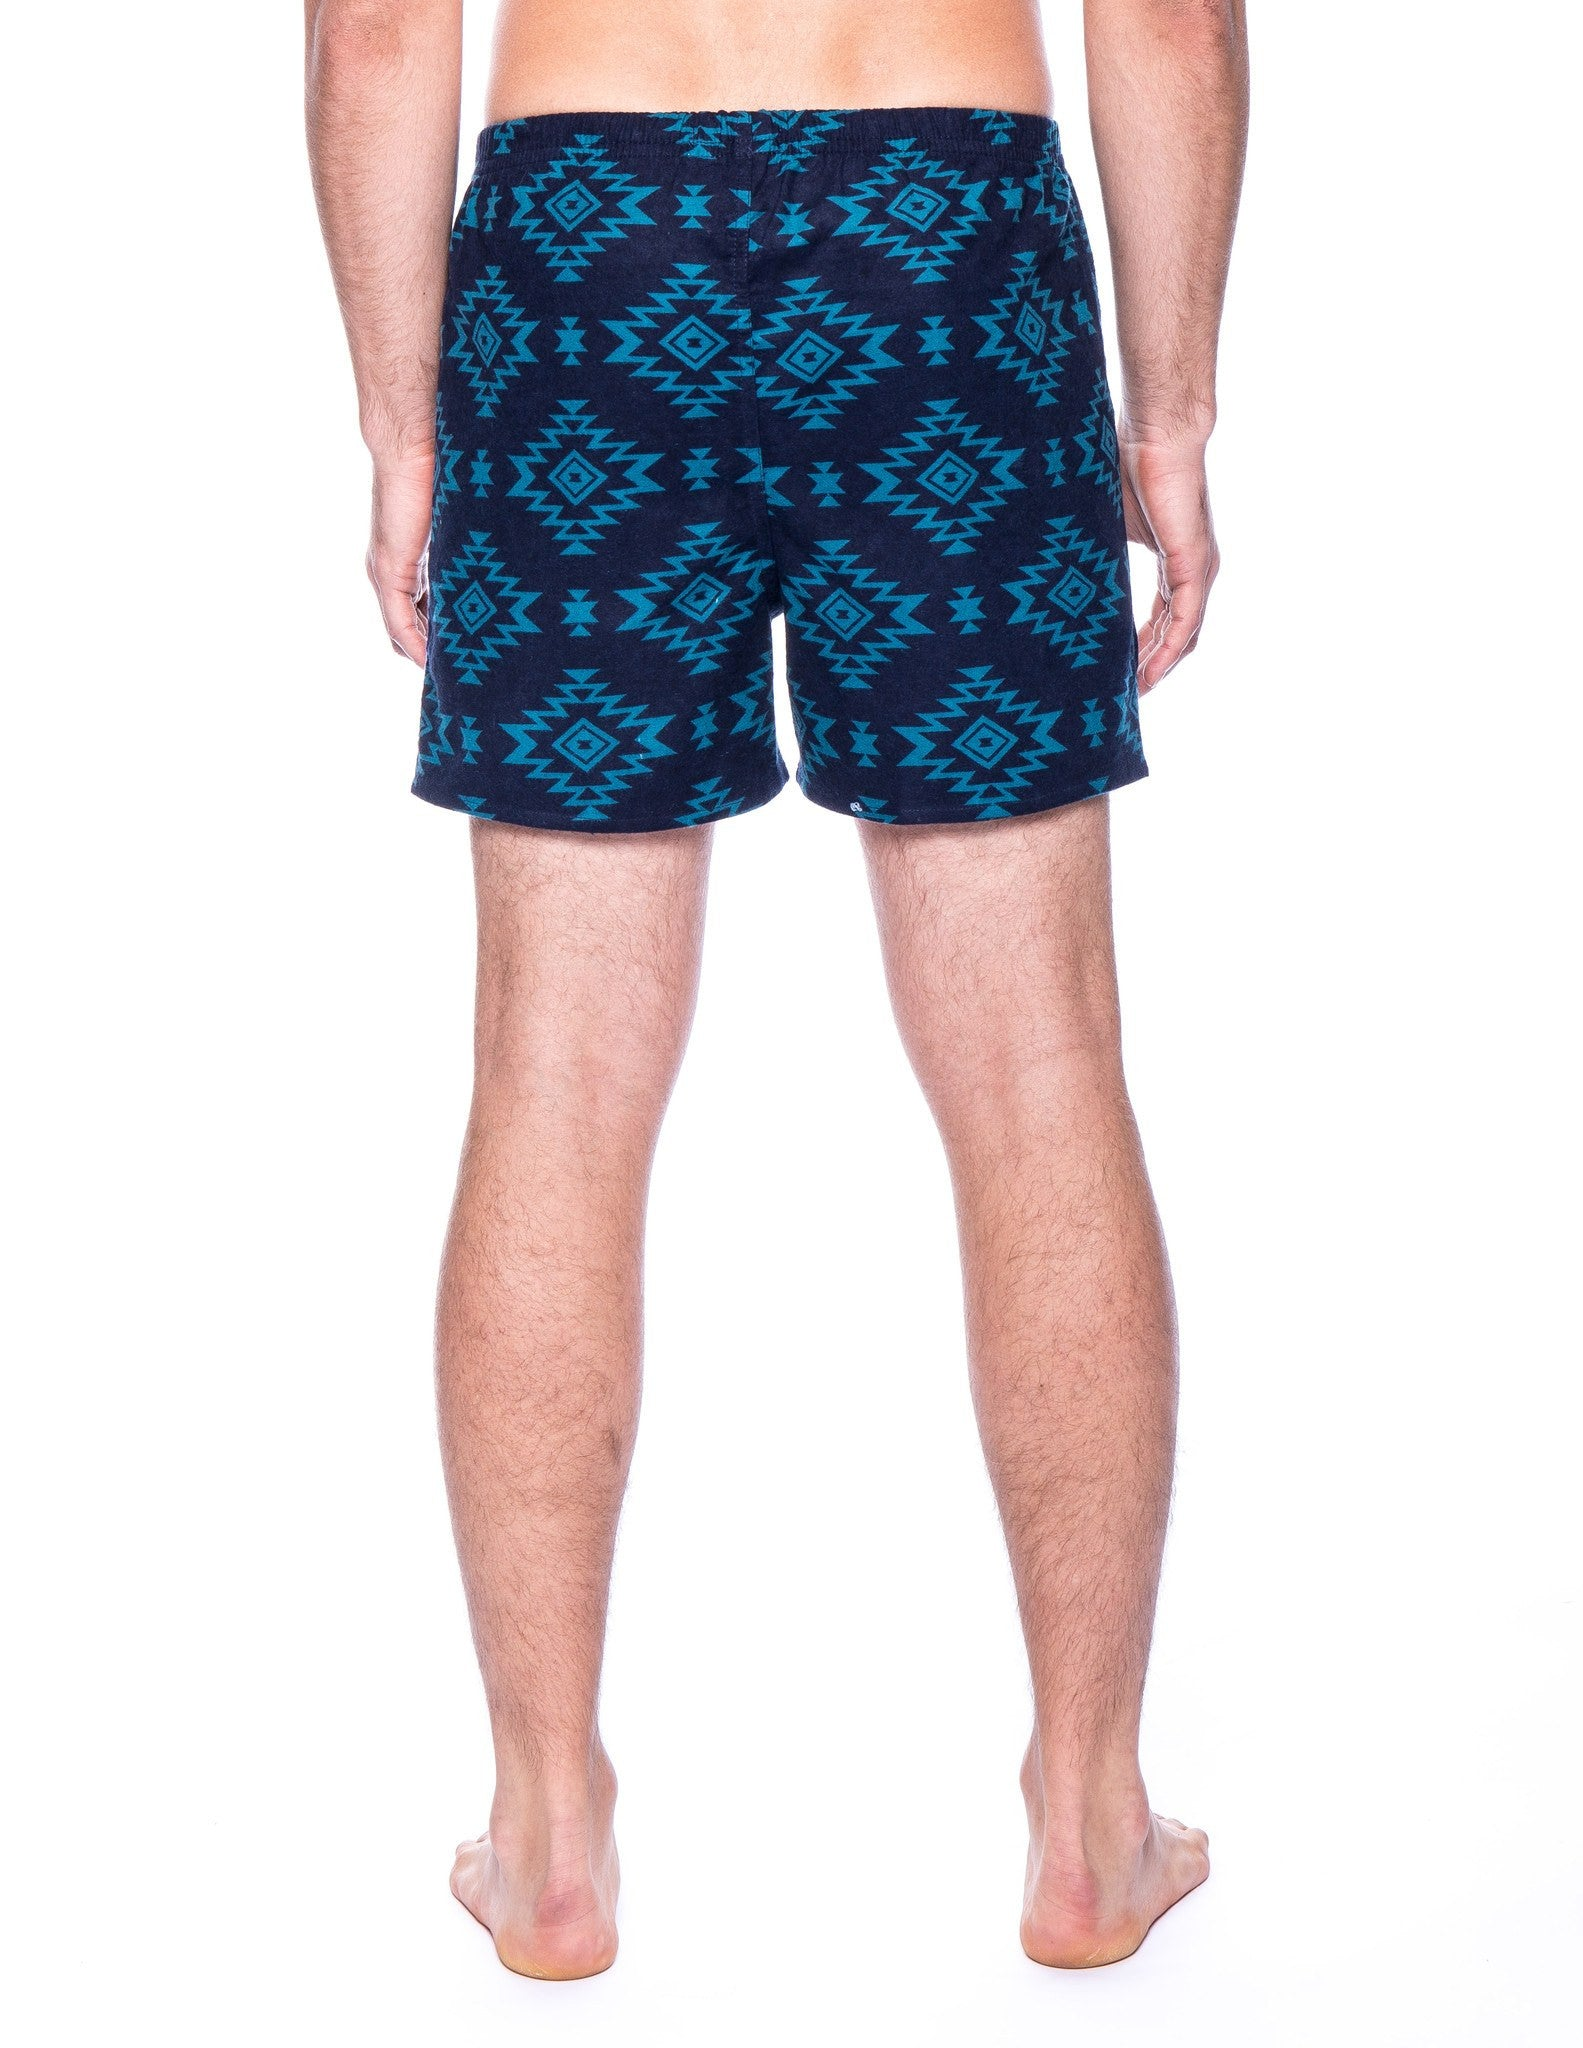 Aztec Black/Navy